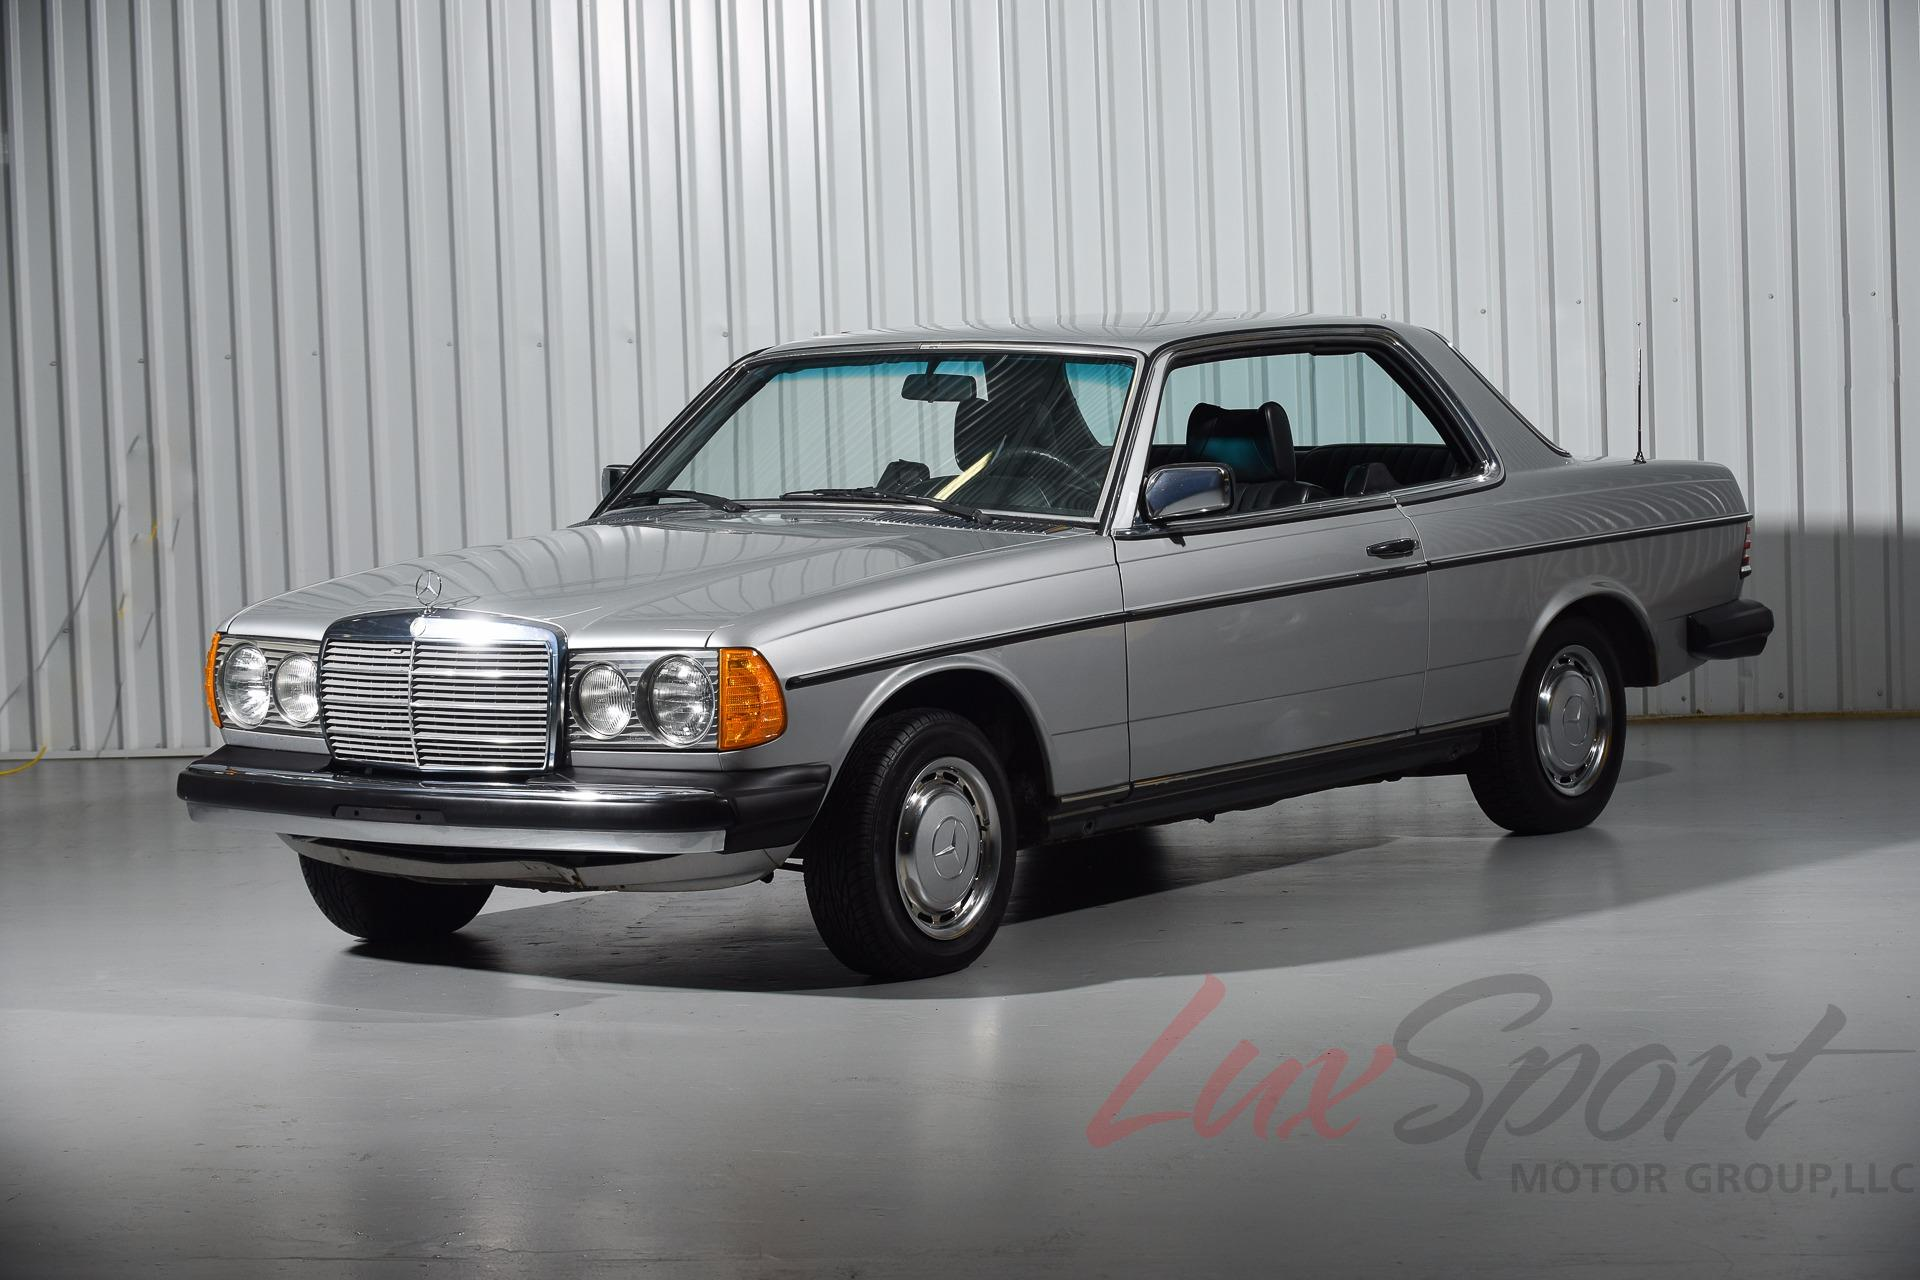 1979 mercedes benz 280ce coupe stock 1979102 for sale for Mercedes benz nearby